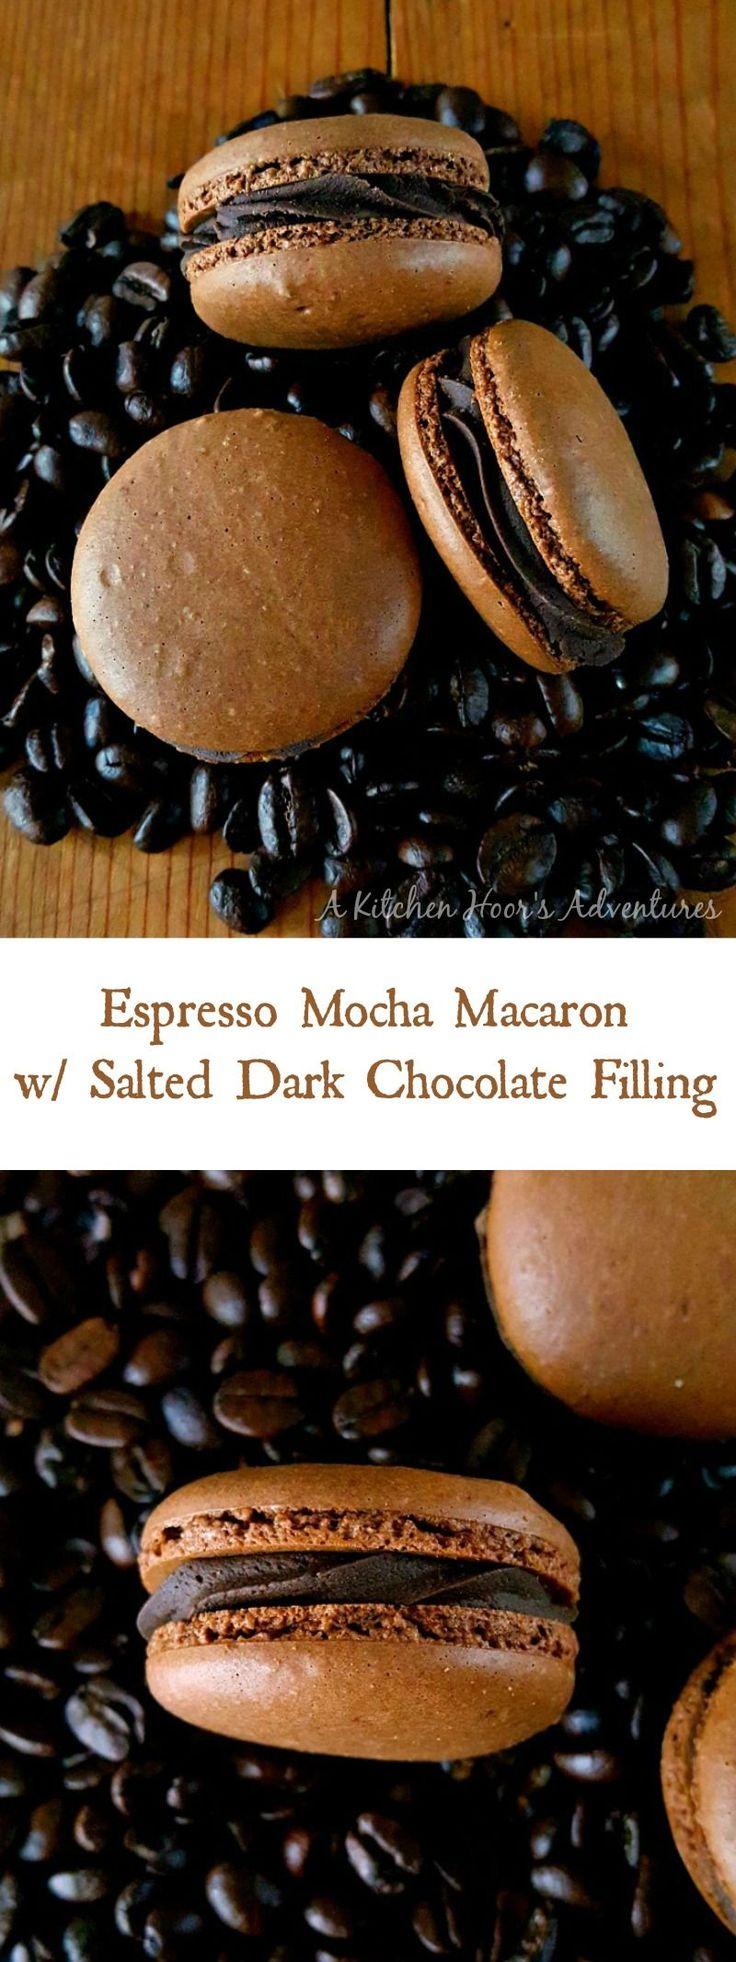 Get a coffee fix in these deliciously decadent macarons. Espresso Mocha Macaron with Salted Dark Chocolate Filling taste like a fancy cup of mocha espresso with a pleasant hint of salt in the buttercream.